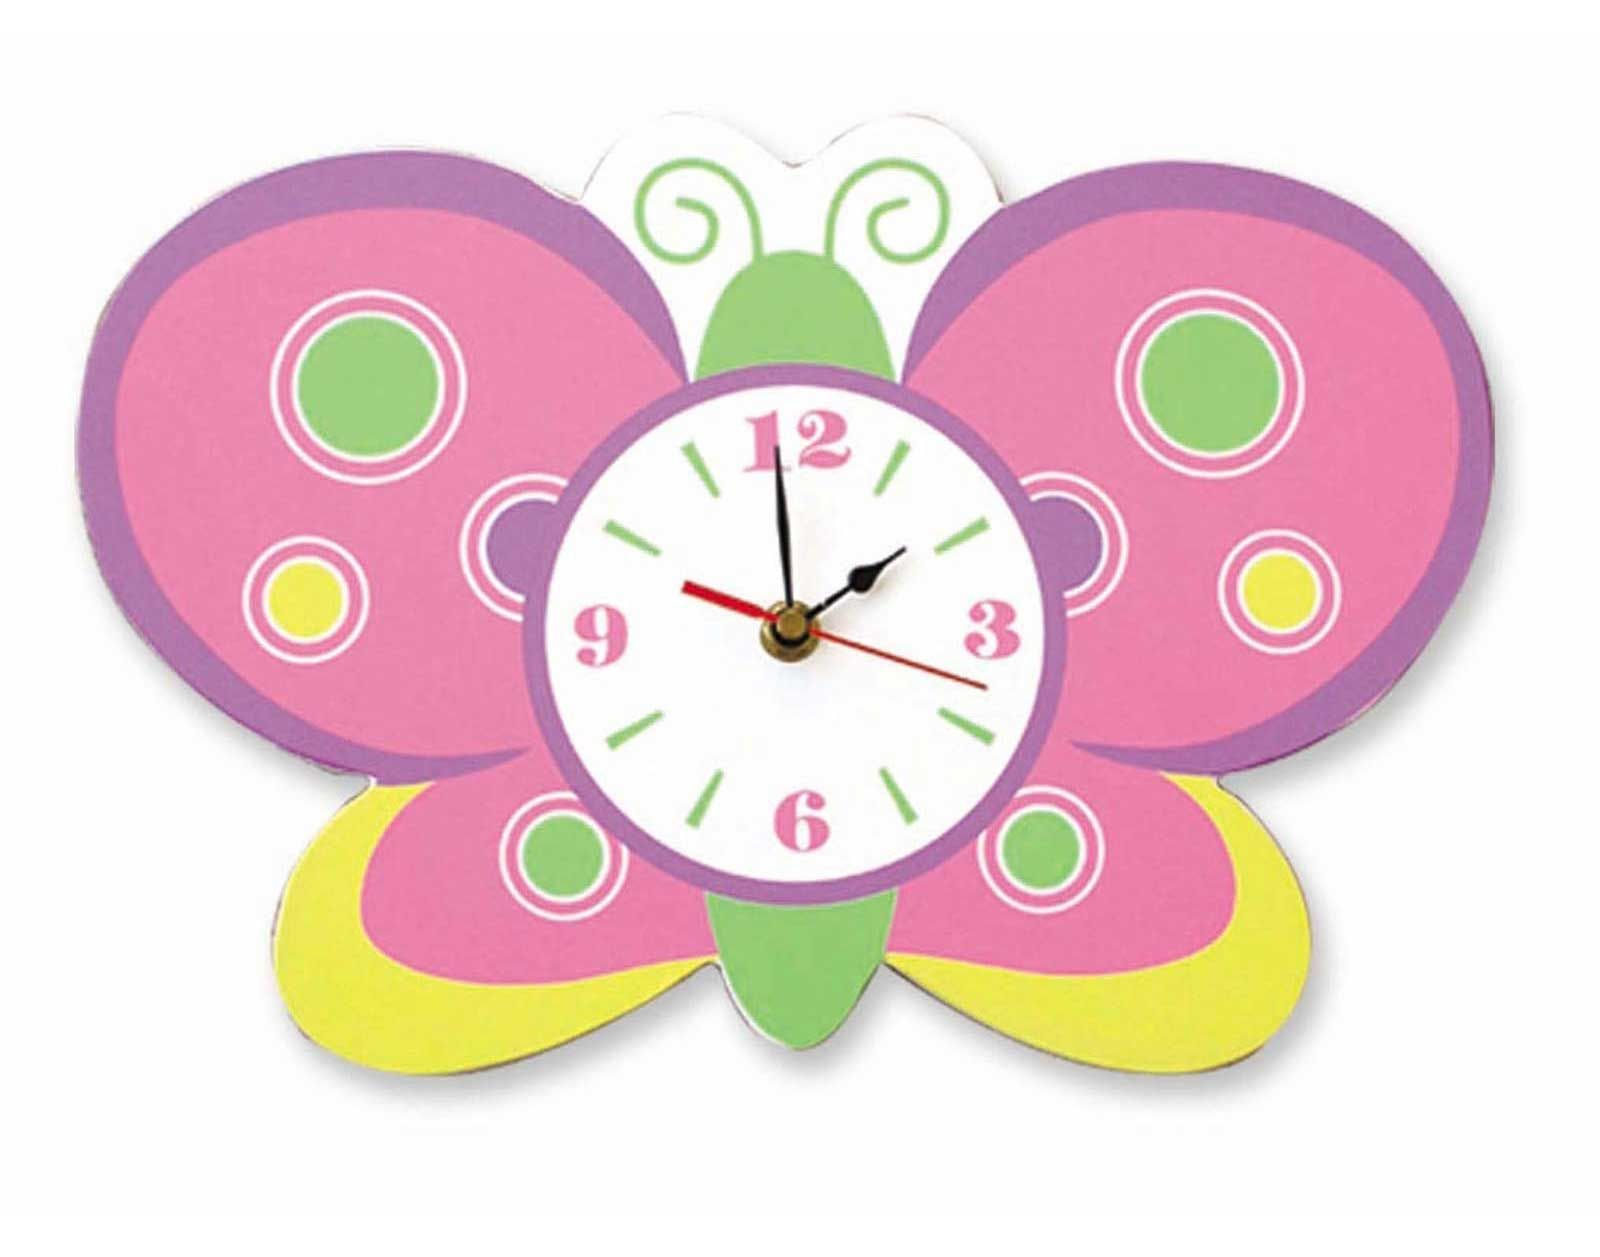 handmade wall clocks designs for kids